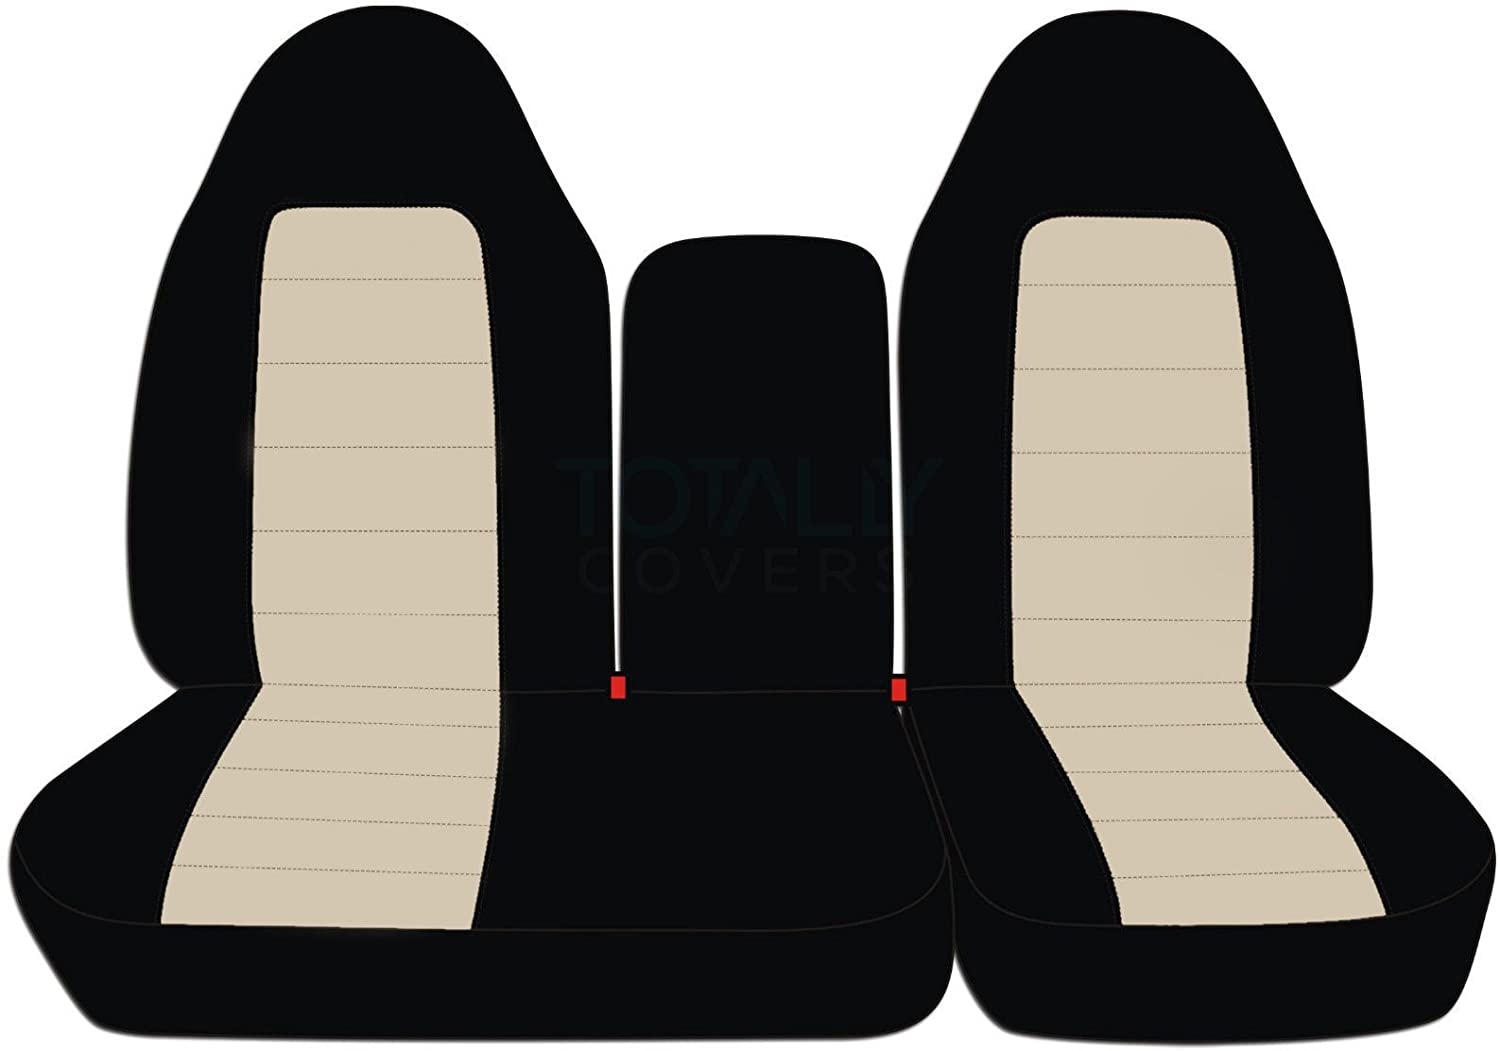 Totally Covers Fits 1997-2000 Ford F-150 Two-Tone Truck Seat Covers 1998 1999 F-Series F150 with Opening Center Console//Solid Armrest: Black /& Charcoal Front 40//60 Split Bench 21 Colors